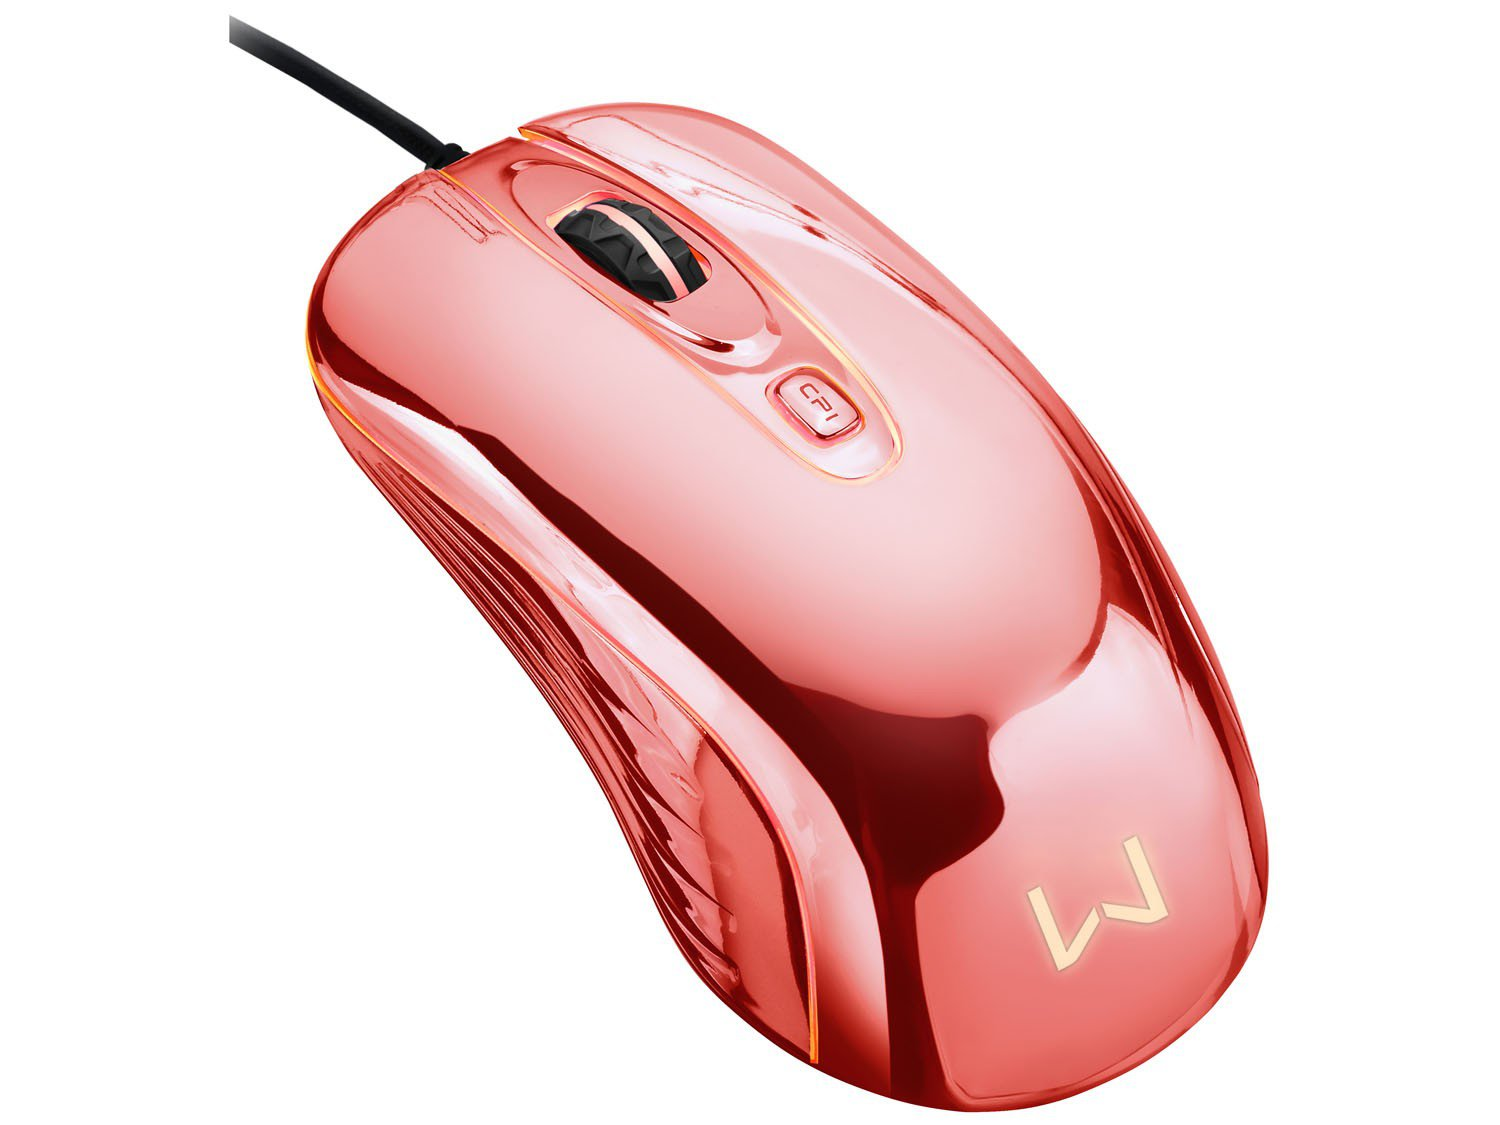 Foto 4 - Mouse Óptico 1600dpi USB - Multilaser Gamer Chrome Warrior M0228